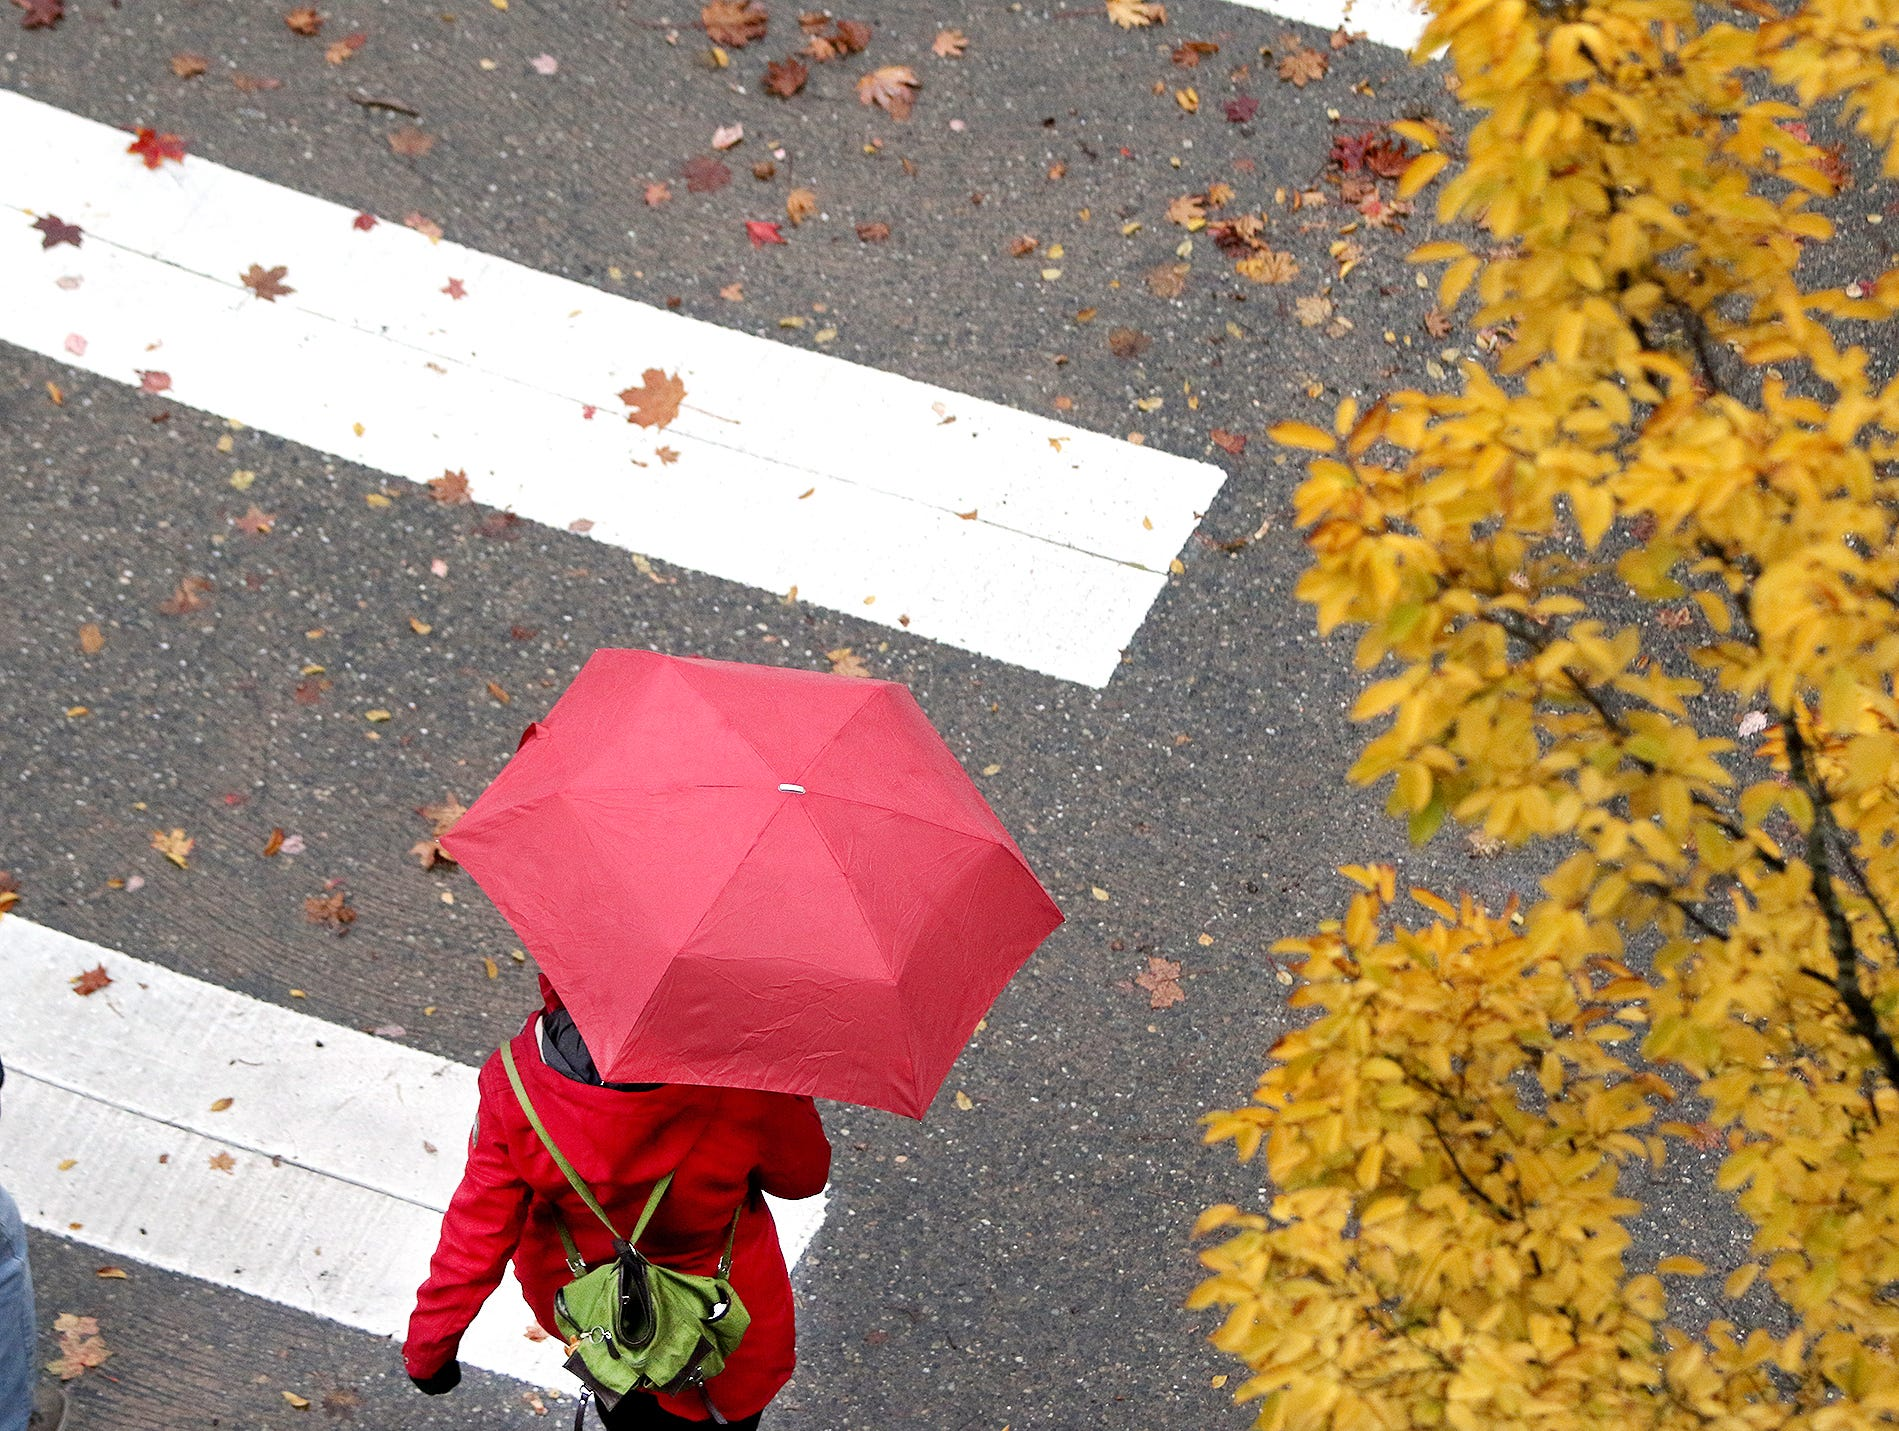 A rainy fall day on Thursday, October, 25, 2018, as a pedestrian walks down Washington Ave, at Fourth Street in Bremerton.